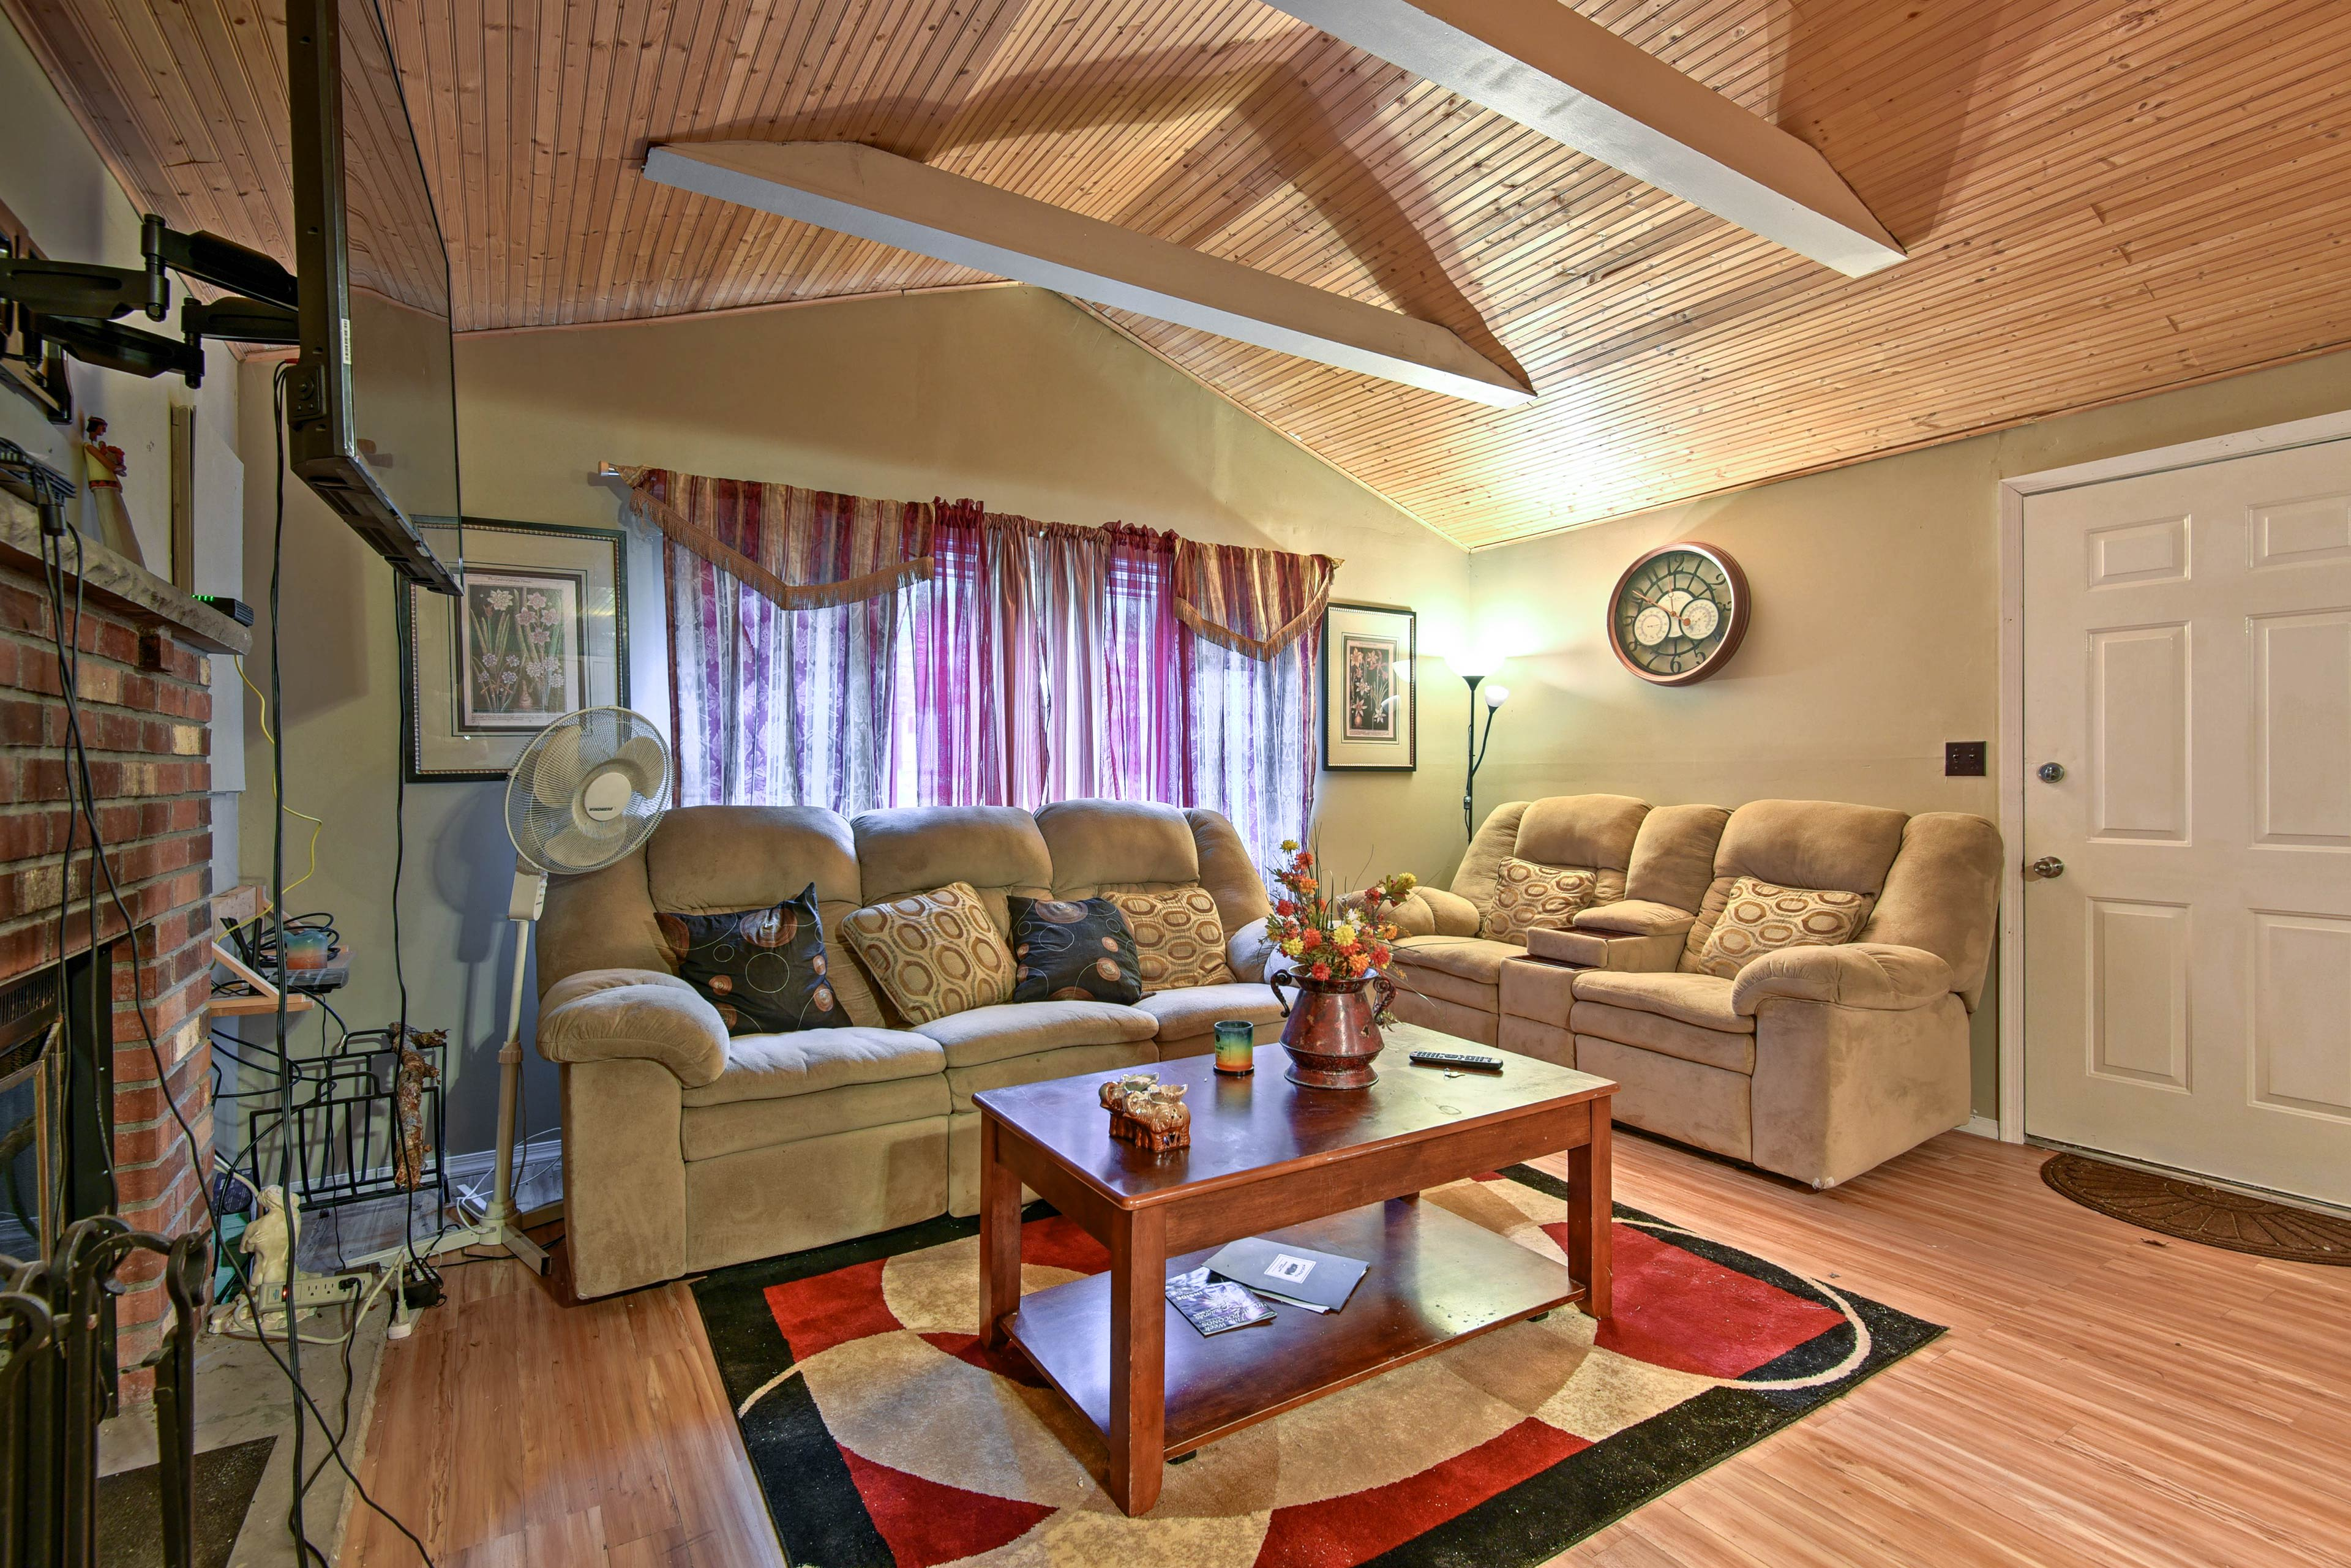 Unwind in this cozy interior after a day on the lake or ski slopes!